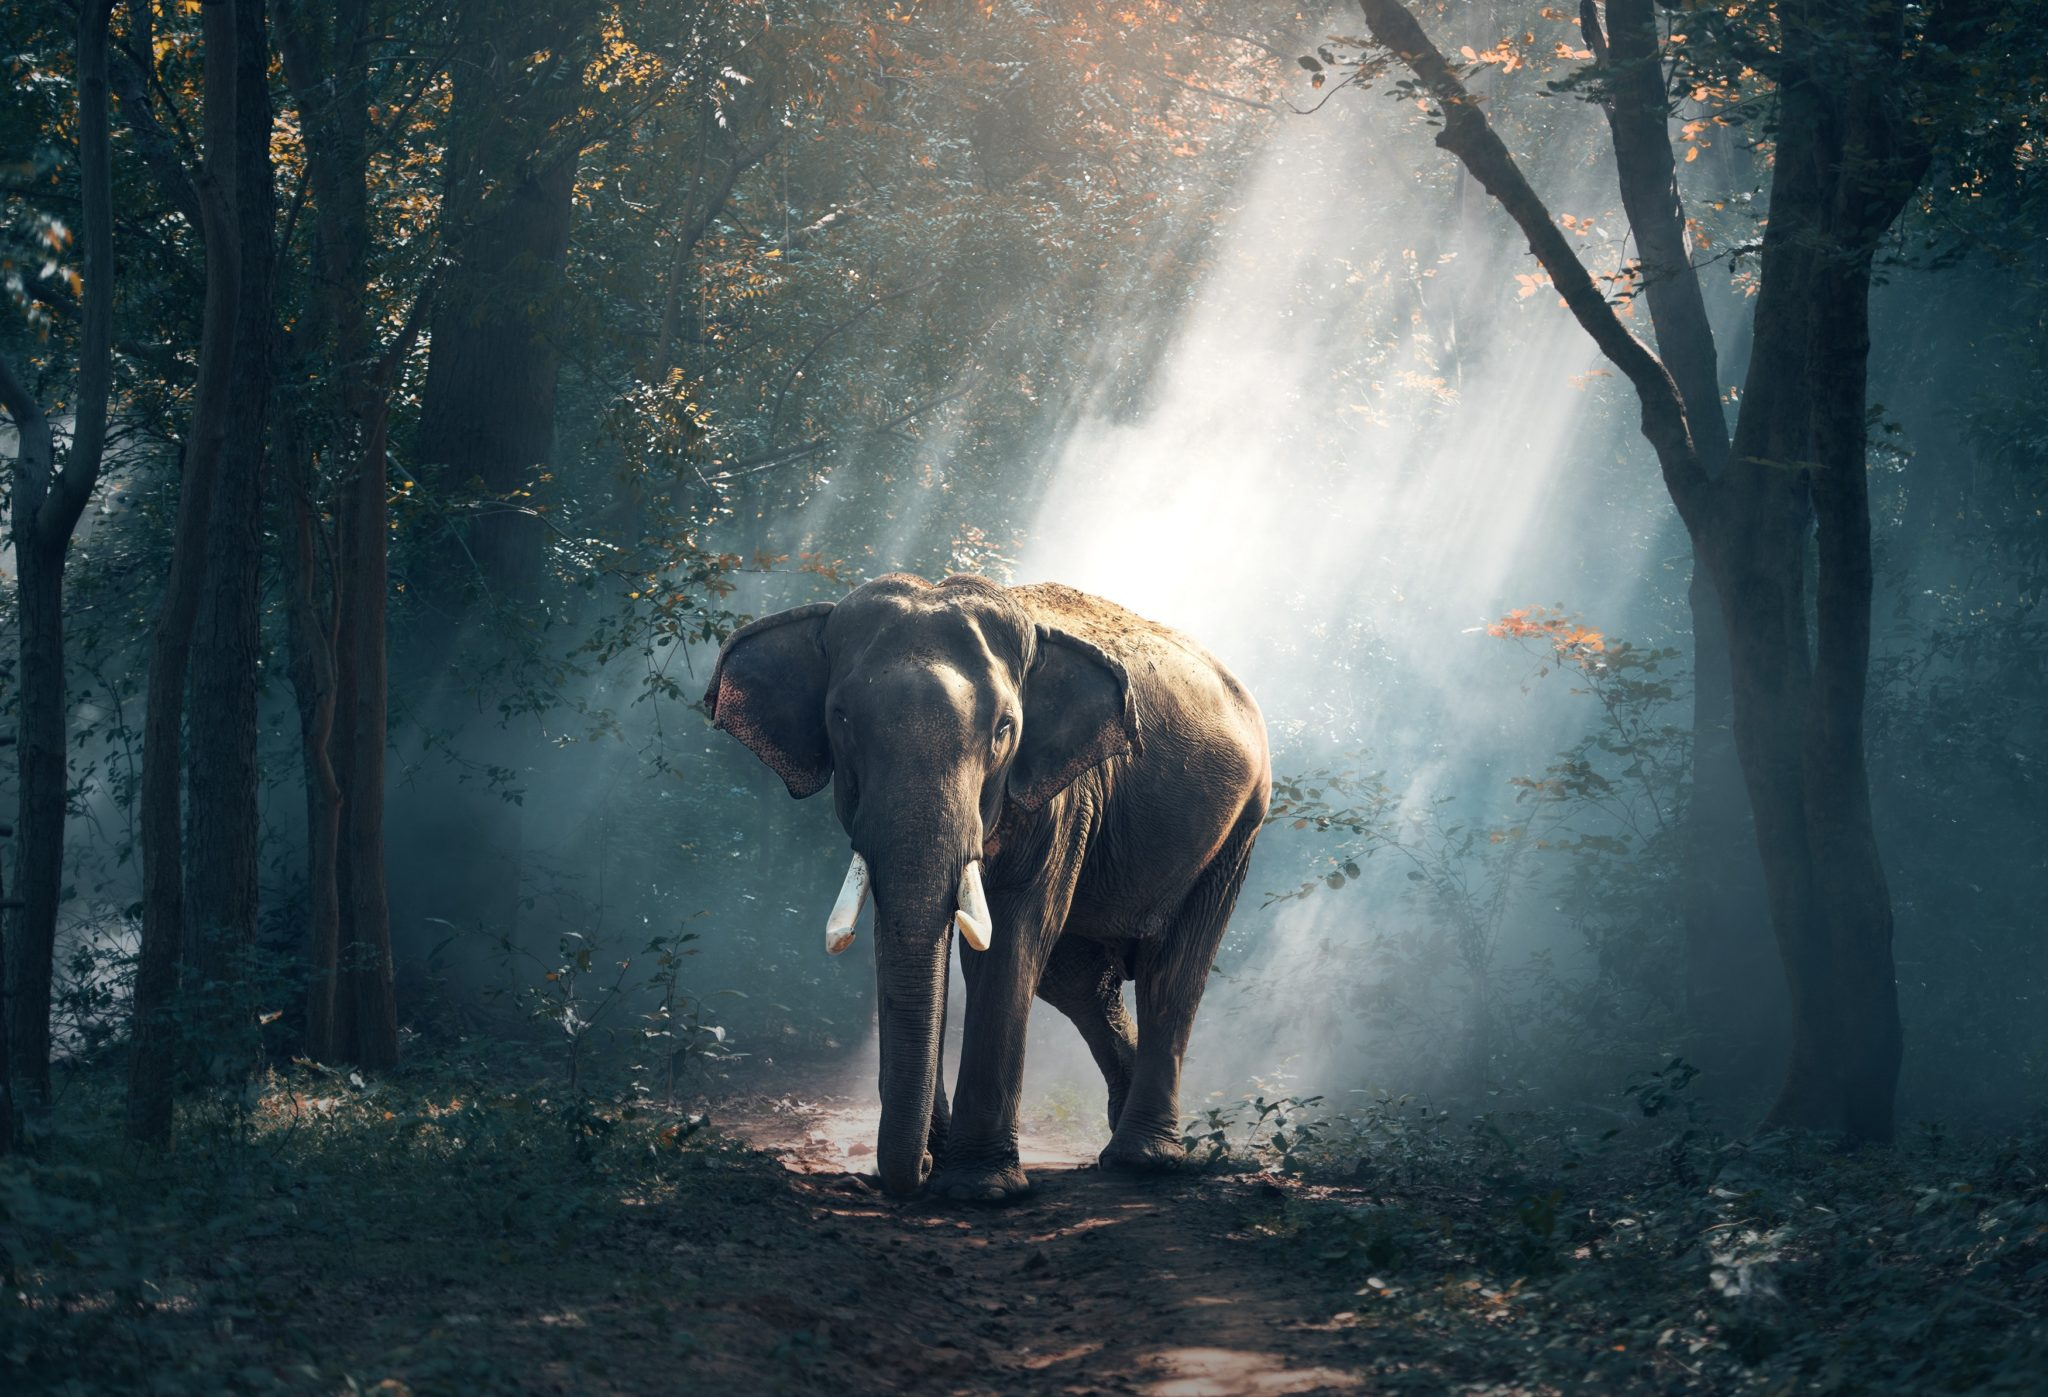 Elephant, travel to Asia